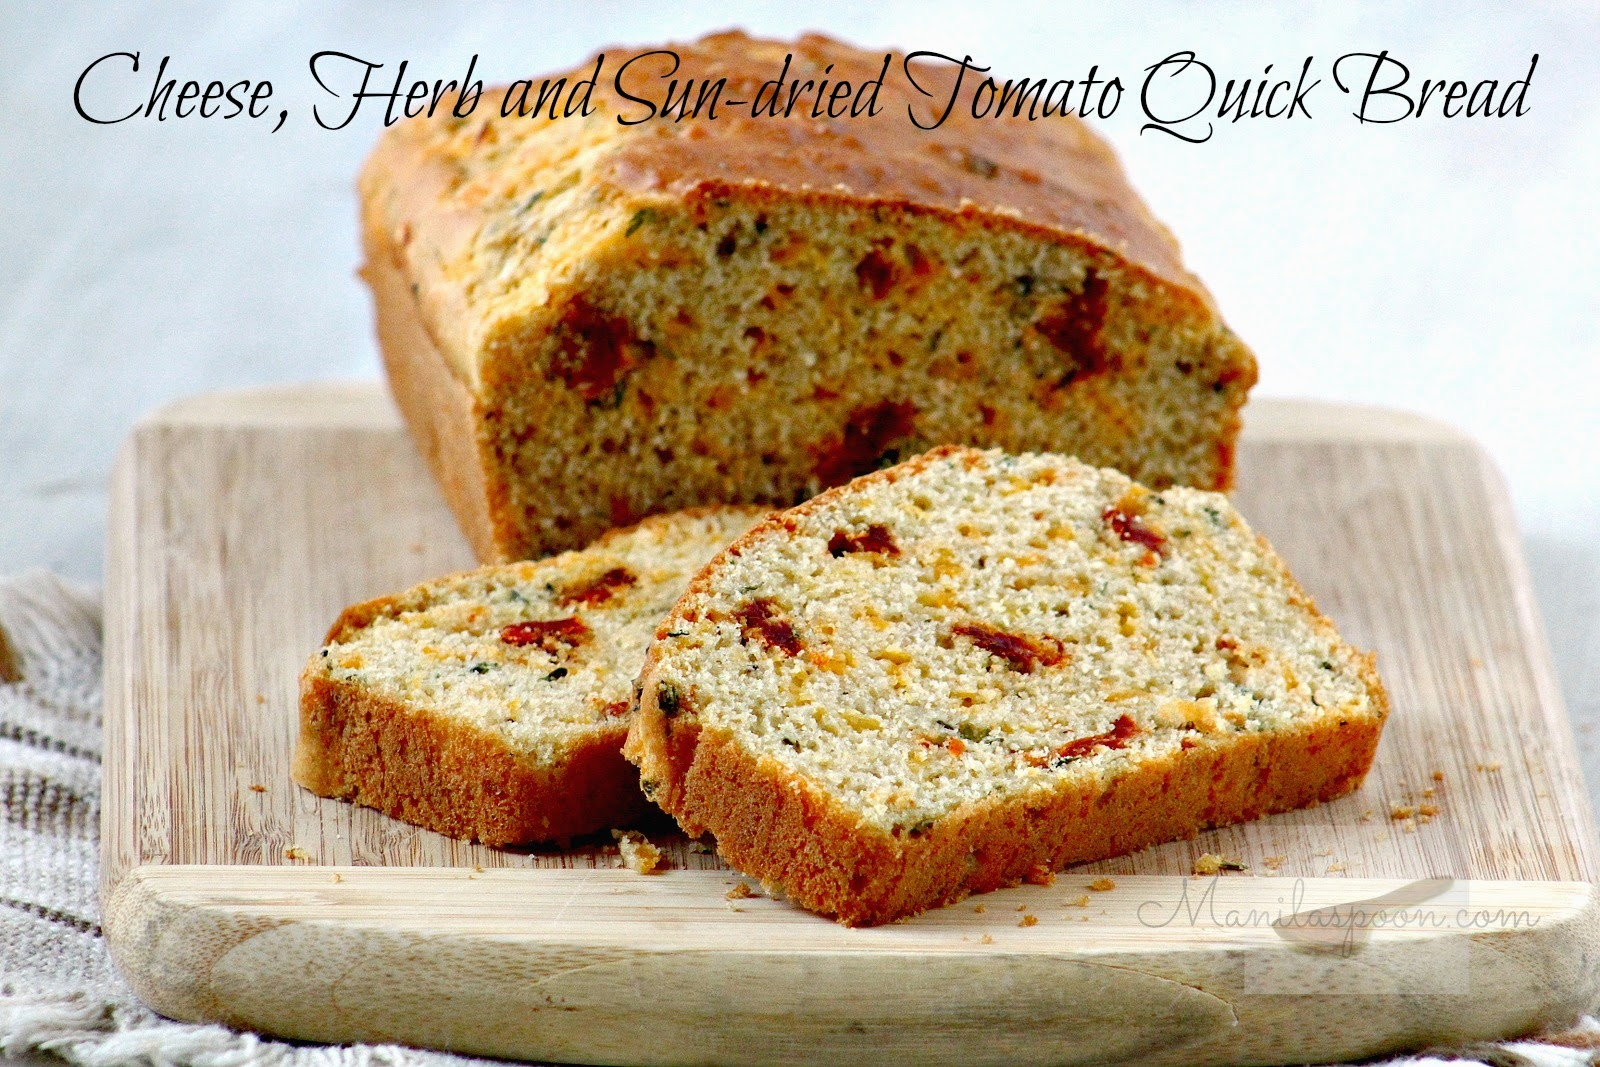 Cheese, Herb and Sun-dried Tomato Quick Bread